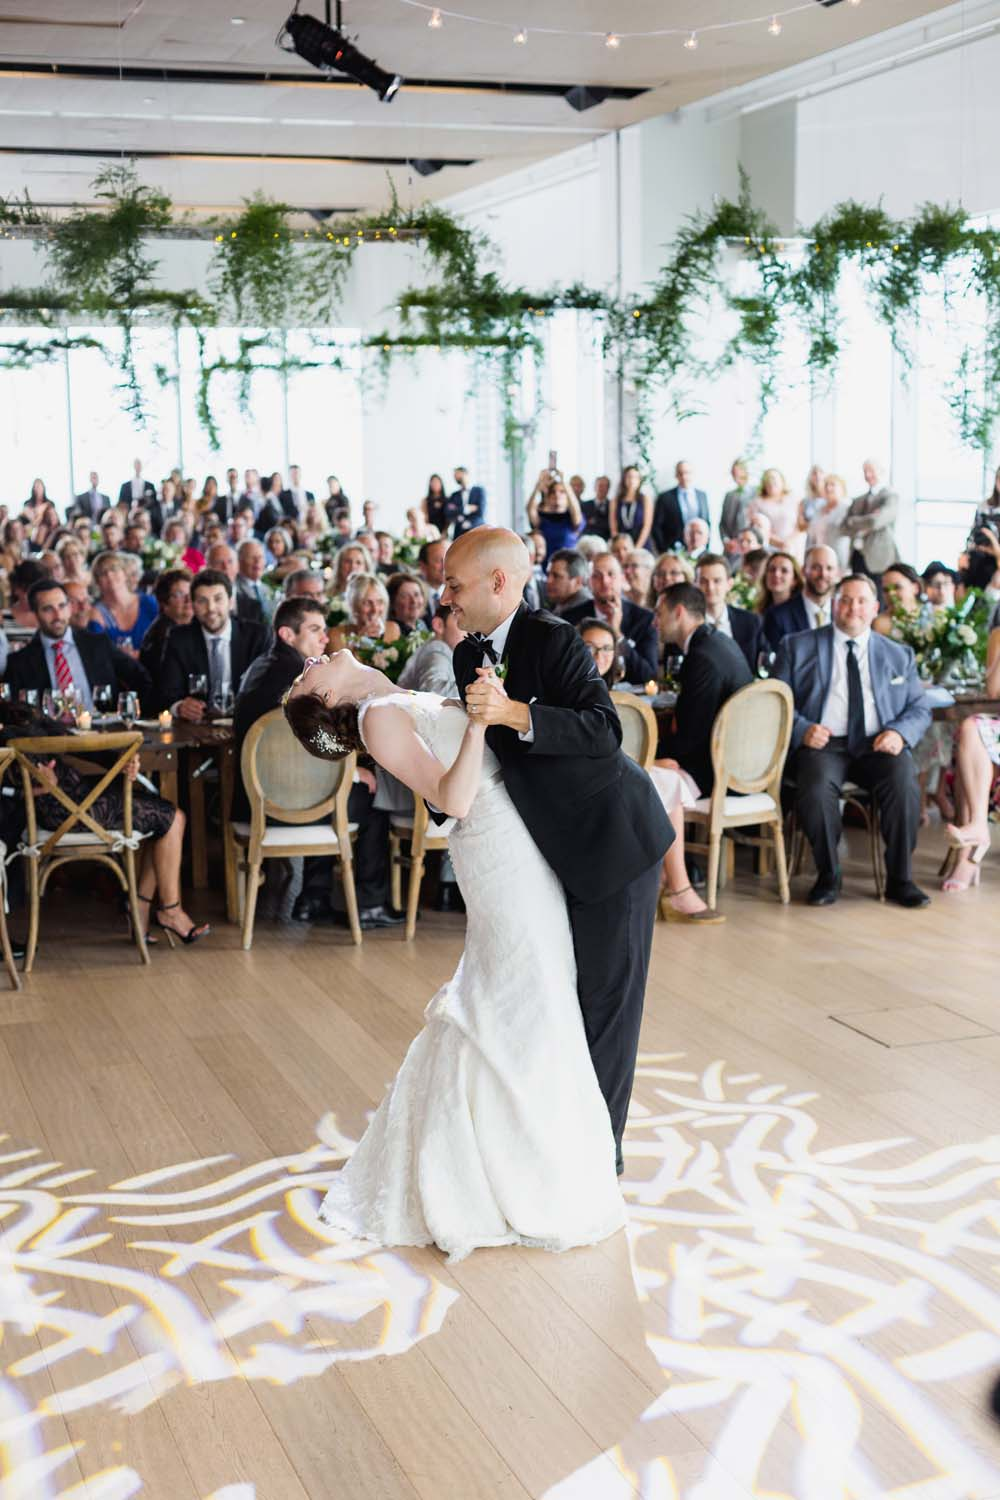 This Toronto Wedding Brings Nature to the City - Dance